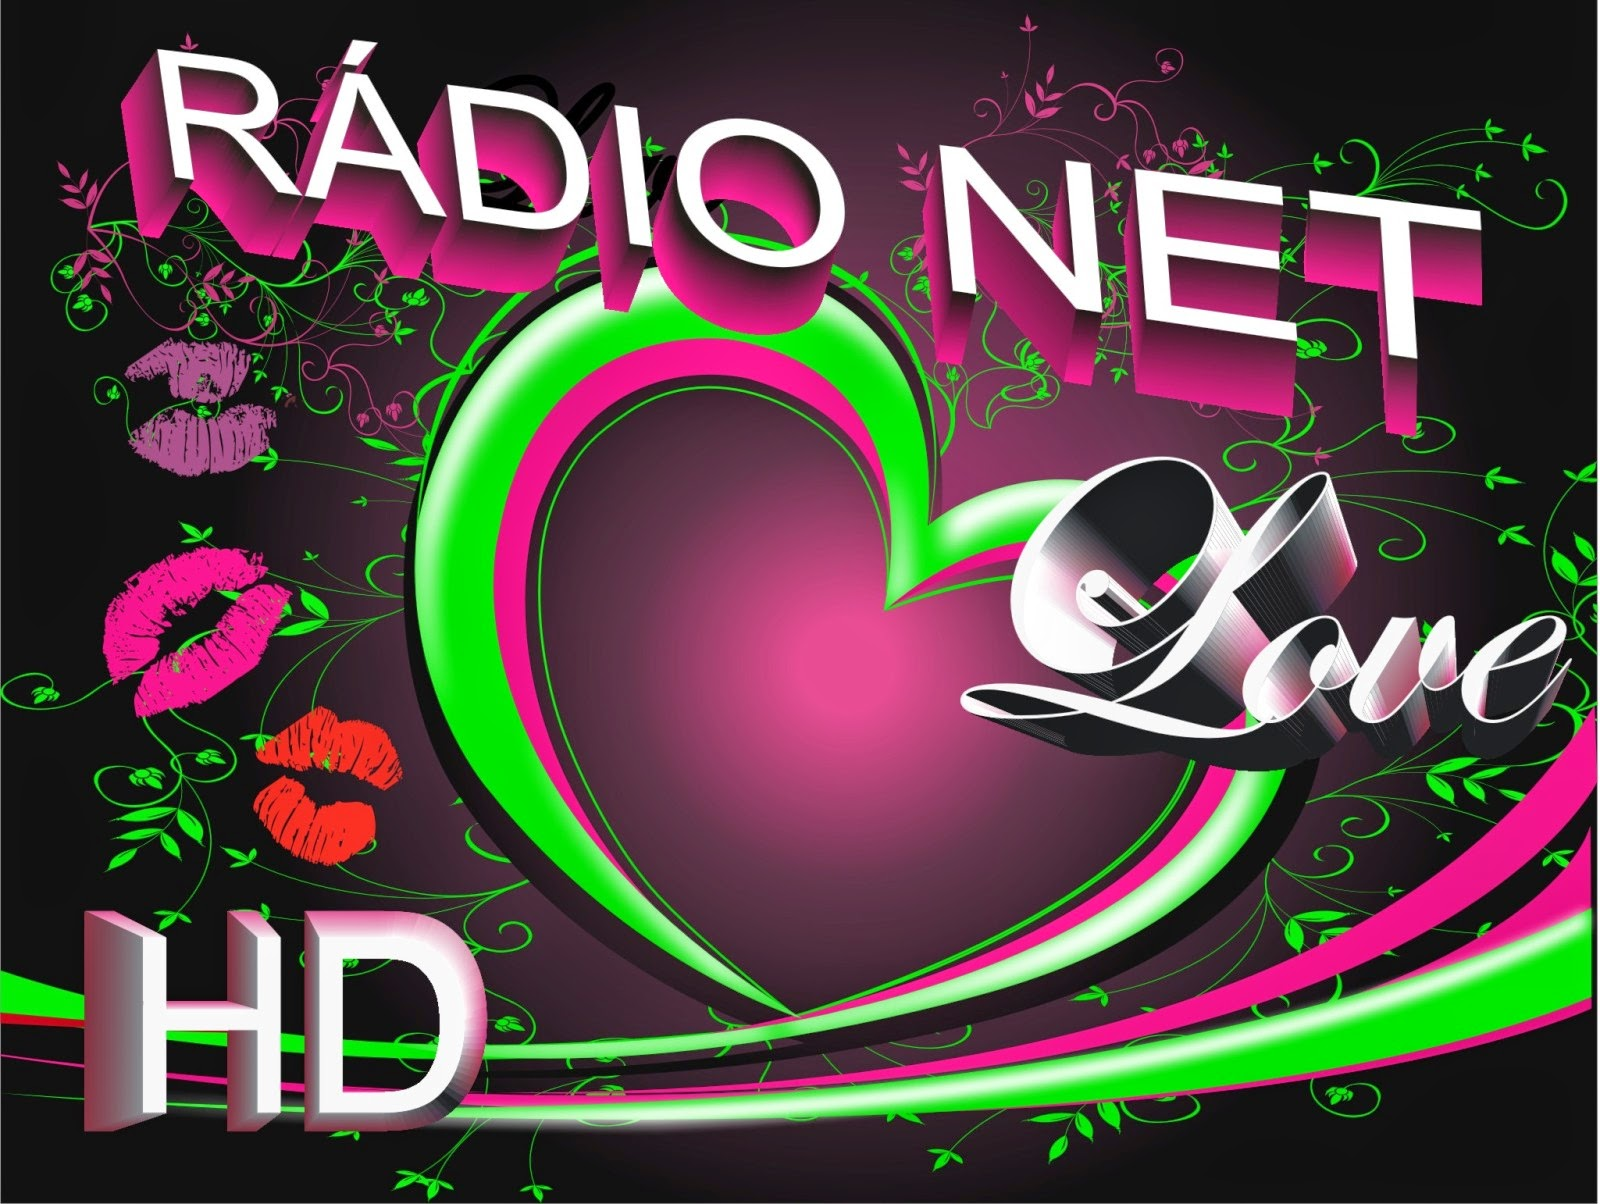 RADIO LOVE NET